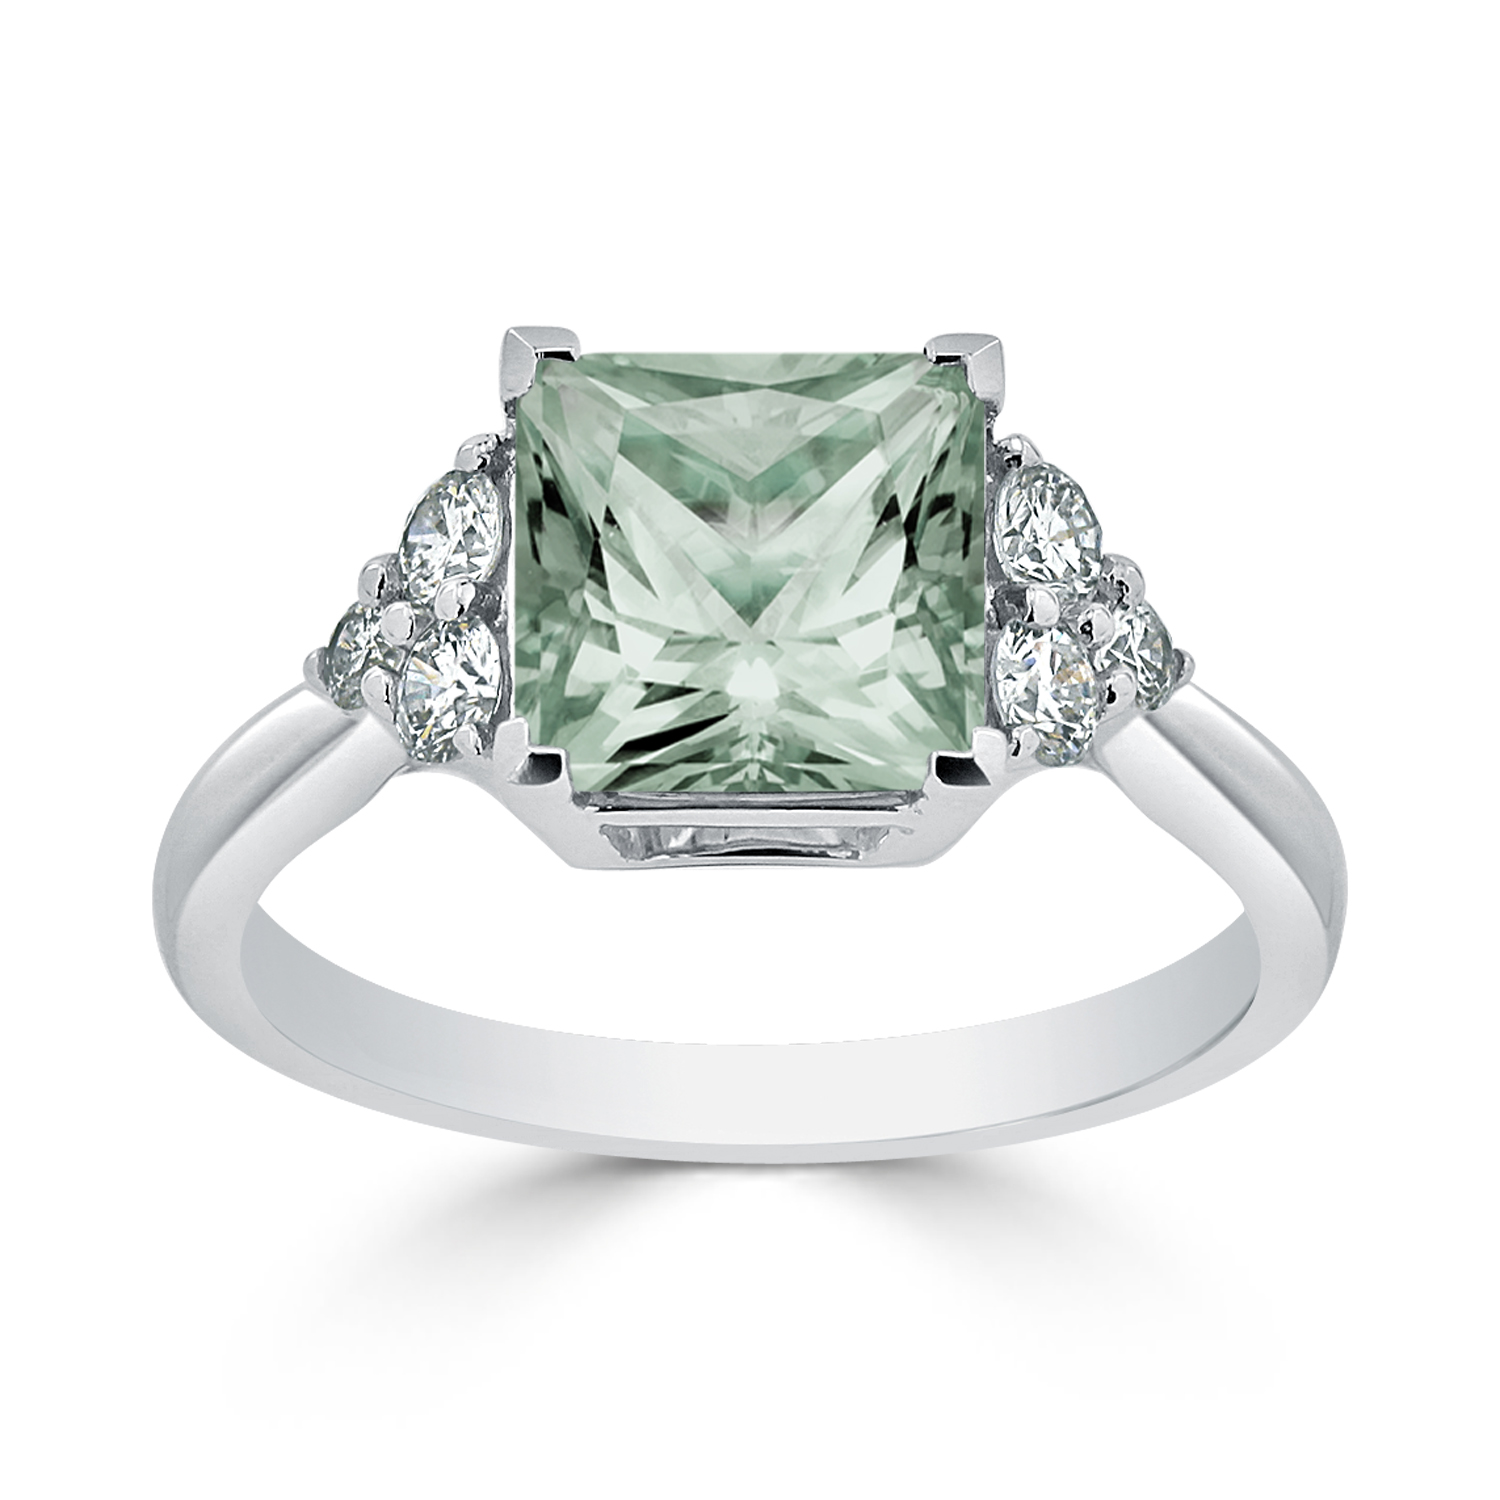 Halo Green Amethyst Diamond Ring in 14K White Gold with 2.10 carat Princess Green Amethyst